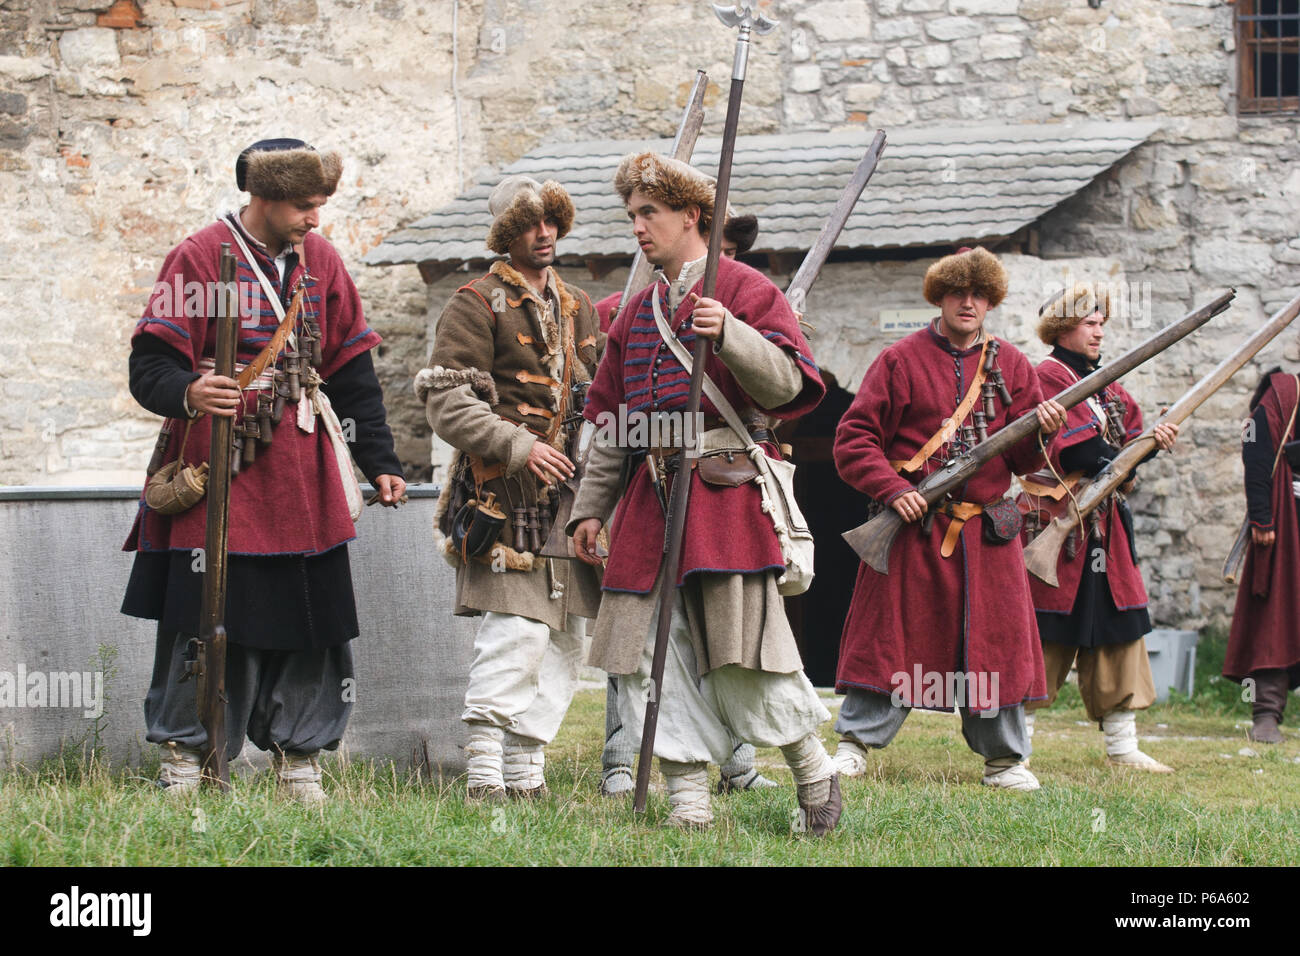 KAMYANETS-PODILSKY, UKRAINE - SEPTEMBER 26, 2010: Members of history club wear historical uniform 17 century during historical reenactment. The Polish - Stock Image